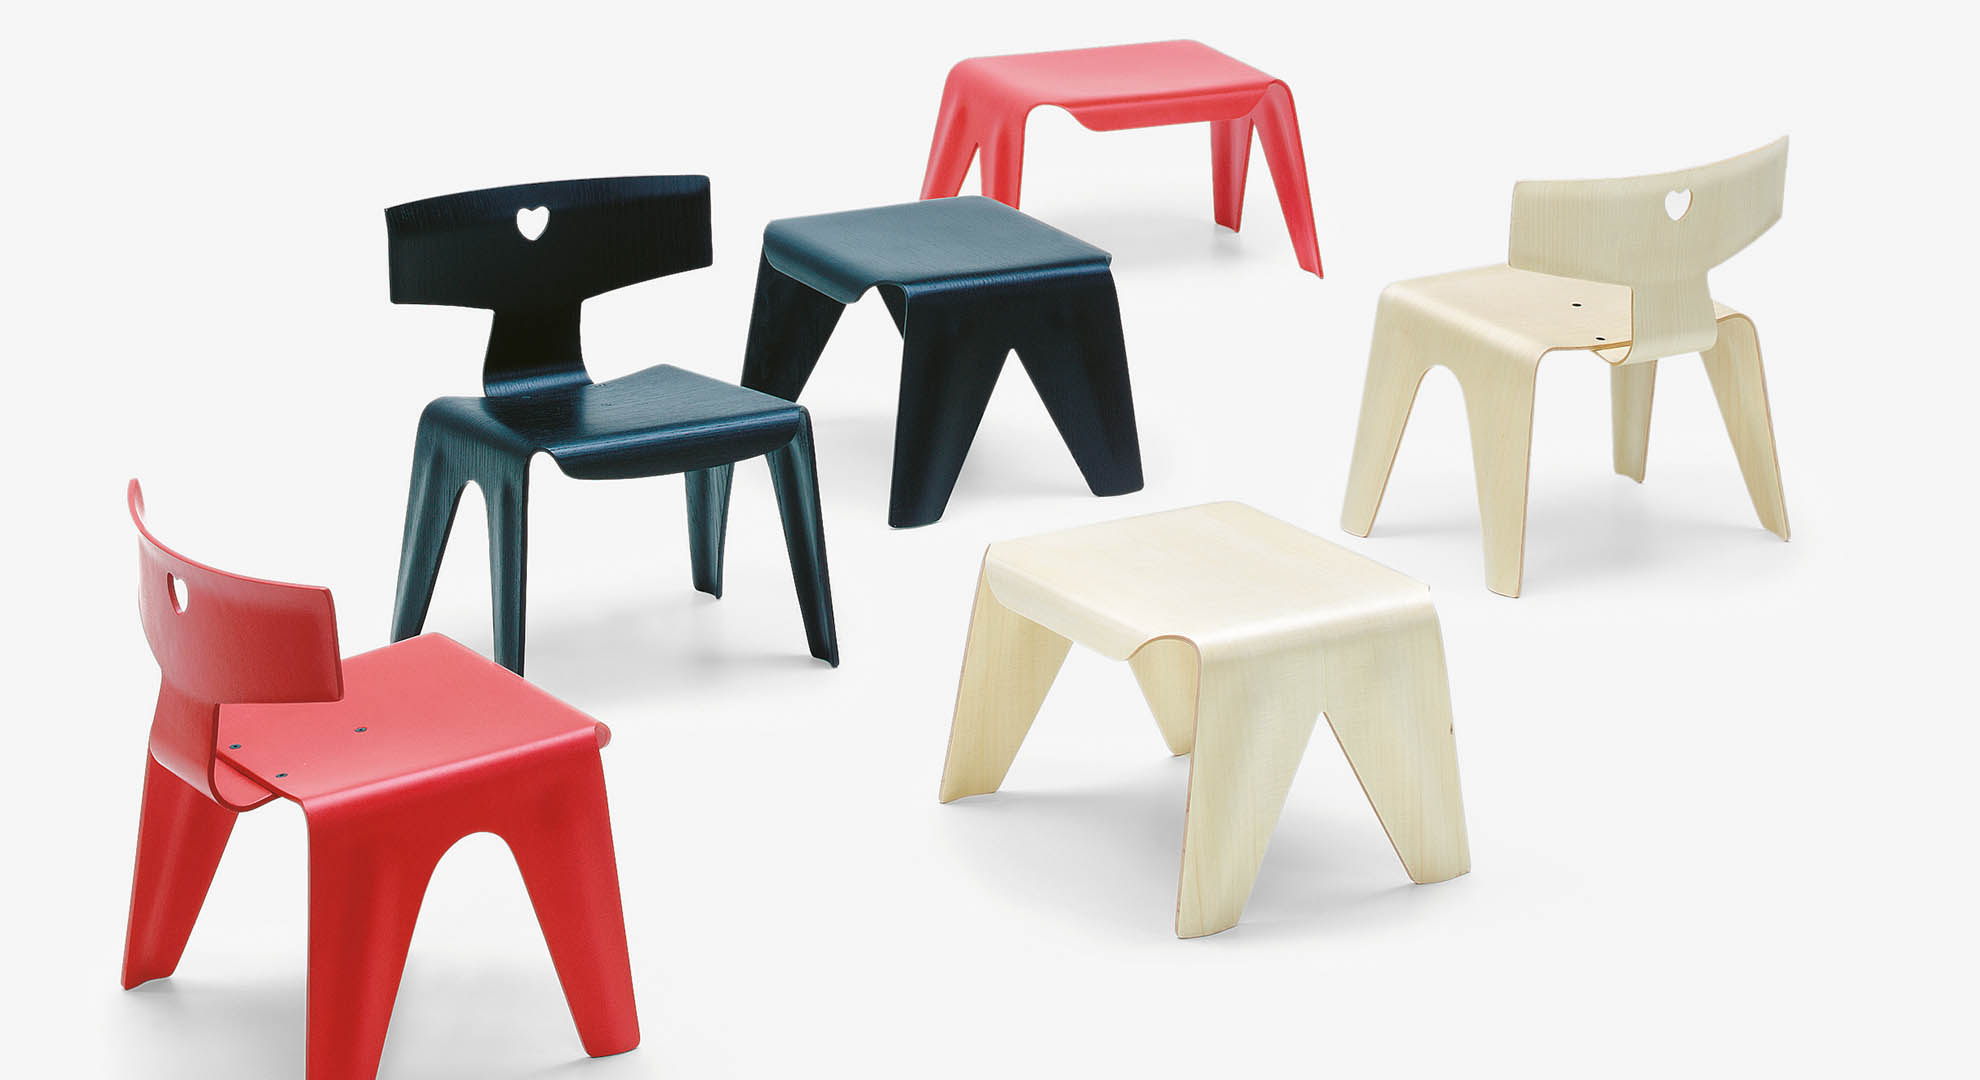 Design for children: a child's chair, by Charles and Ray Eames